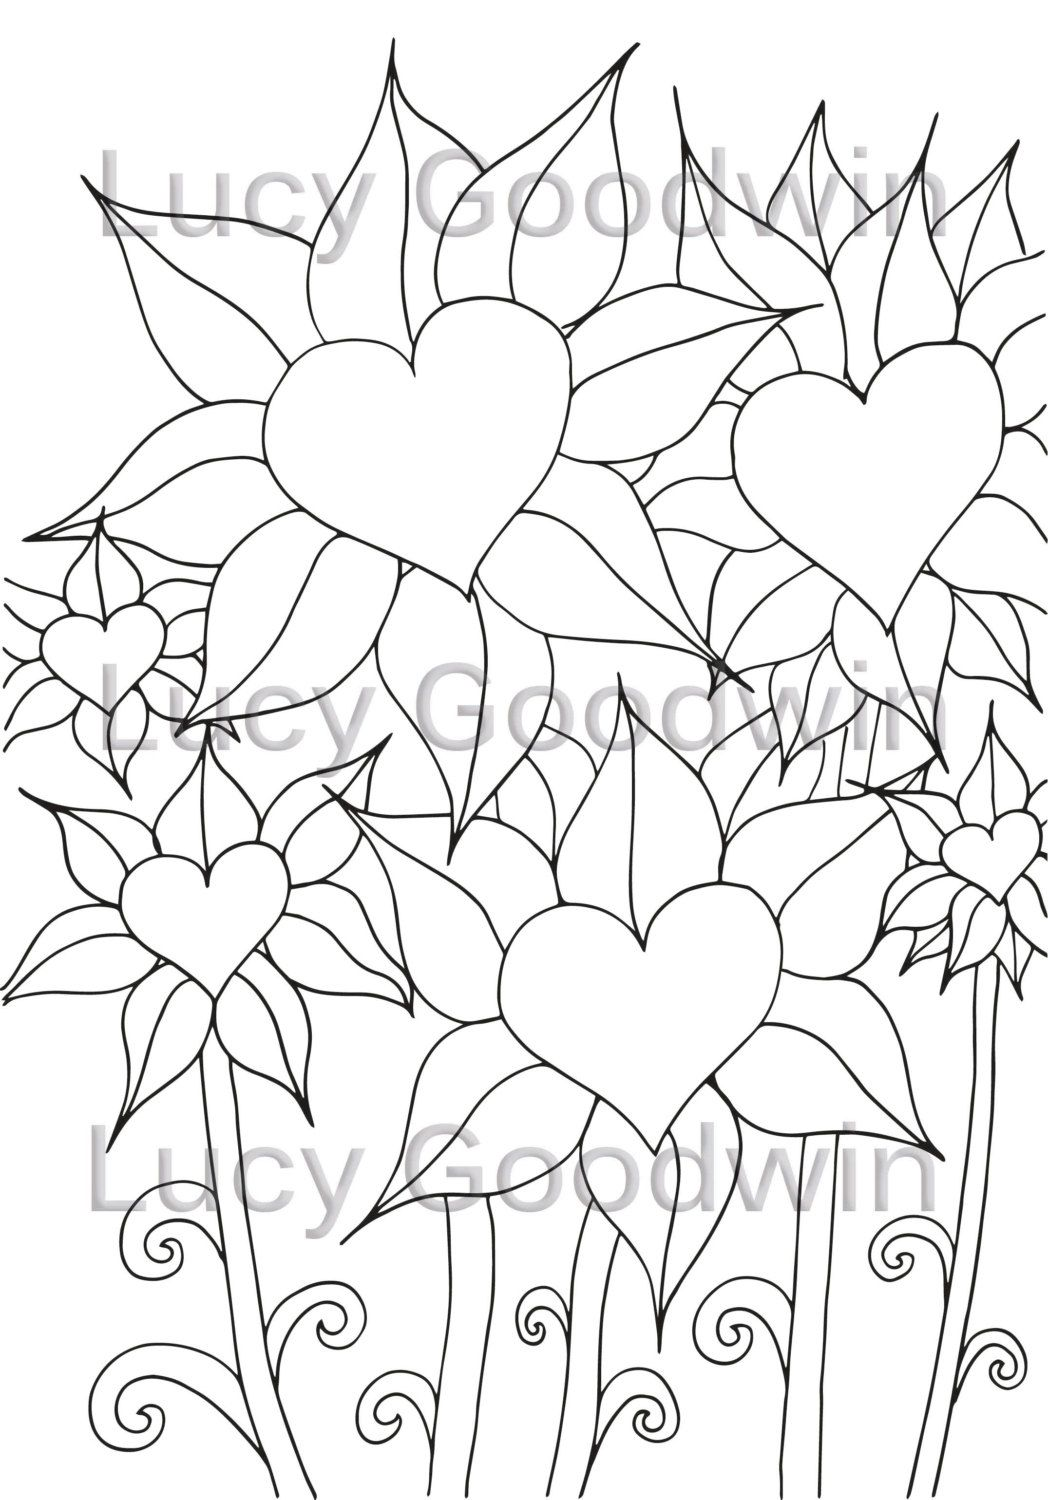 Love Heart Flower Colouring Page by LucyGoodwinDesign on Etsy | Sil ...